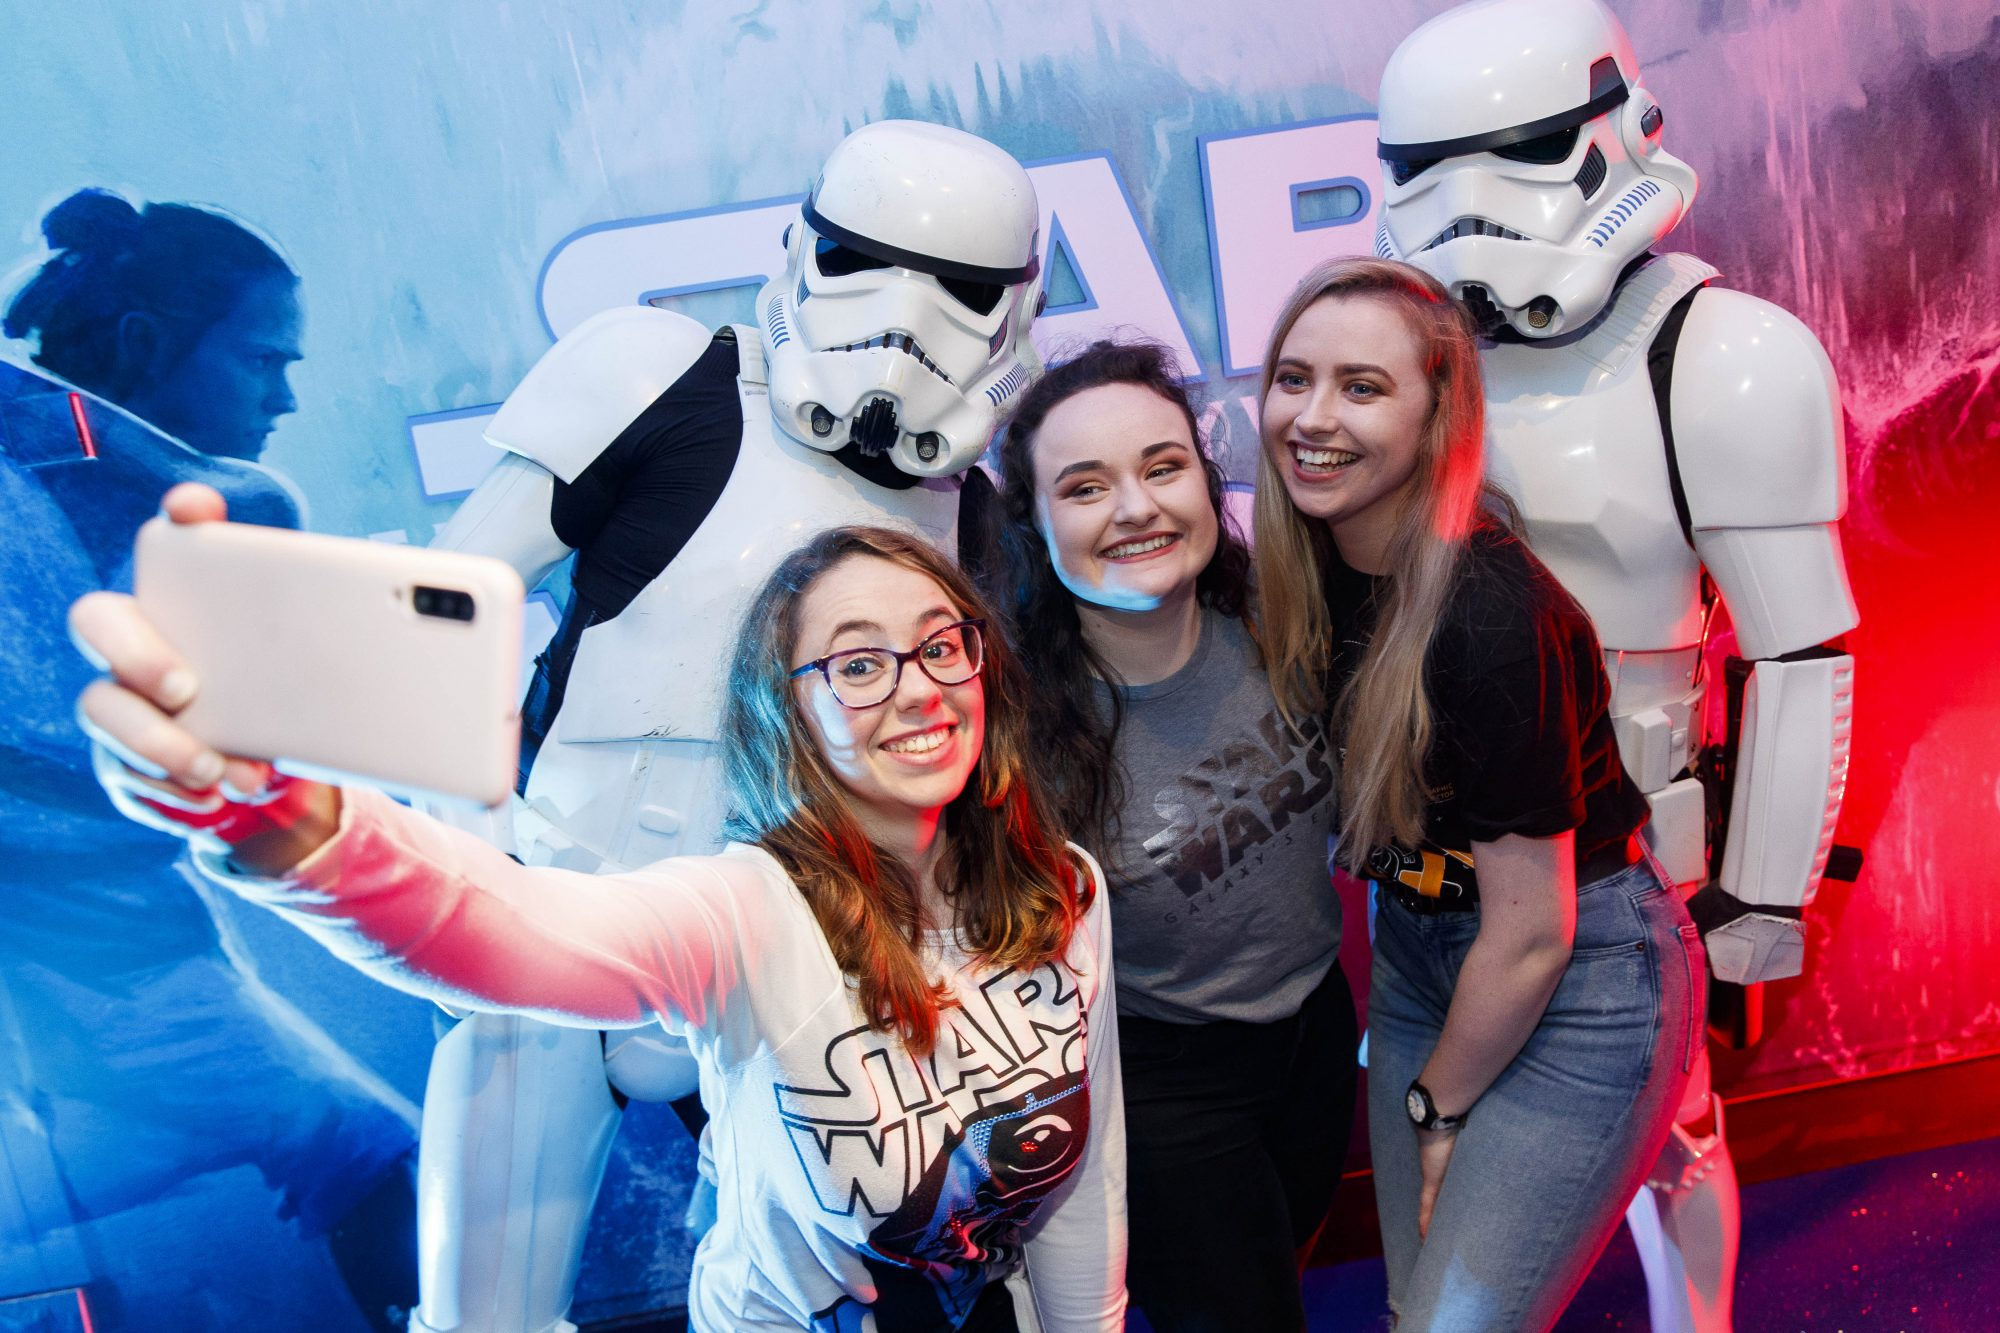 Bella Domingues, Megan Loughrey and Leigh Brady pictured at the Irish premiere screening of Star Wars: The Rise of Skywalker at Cineworld, Dublin. Picture: Andres Poveda